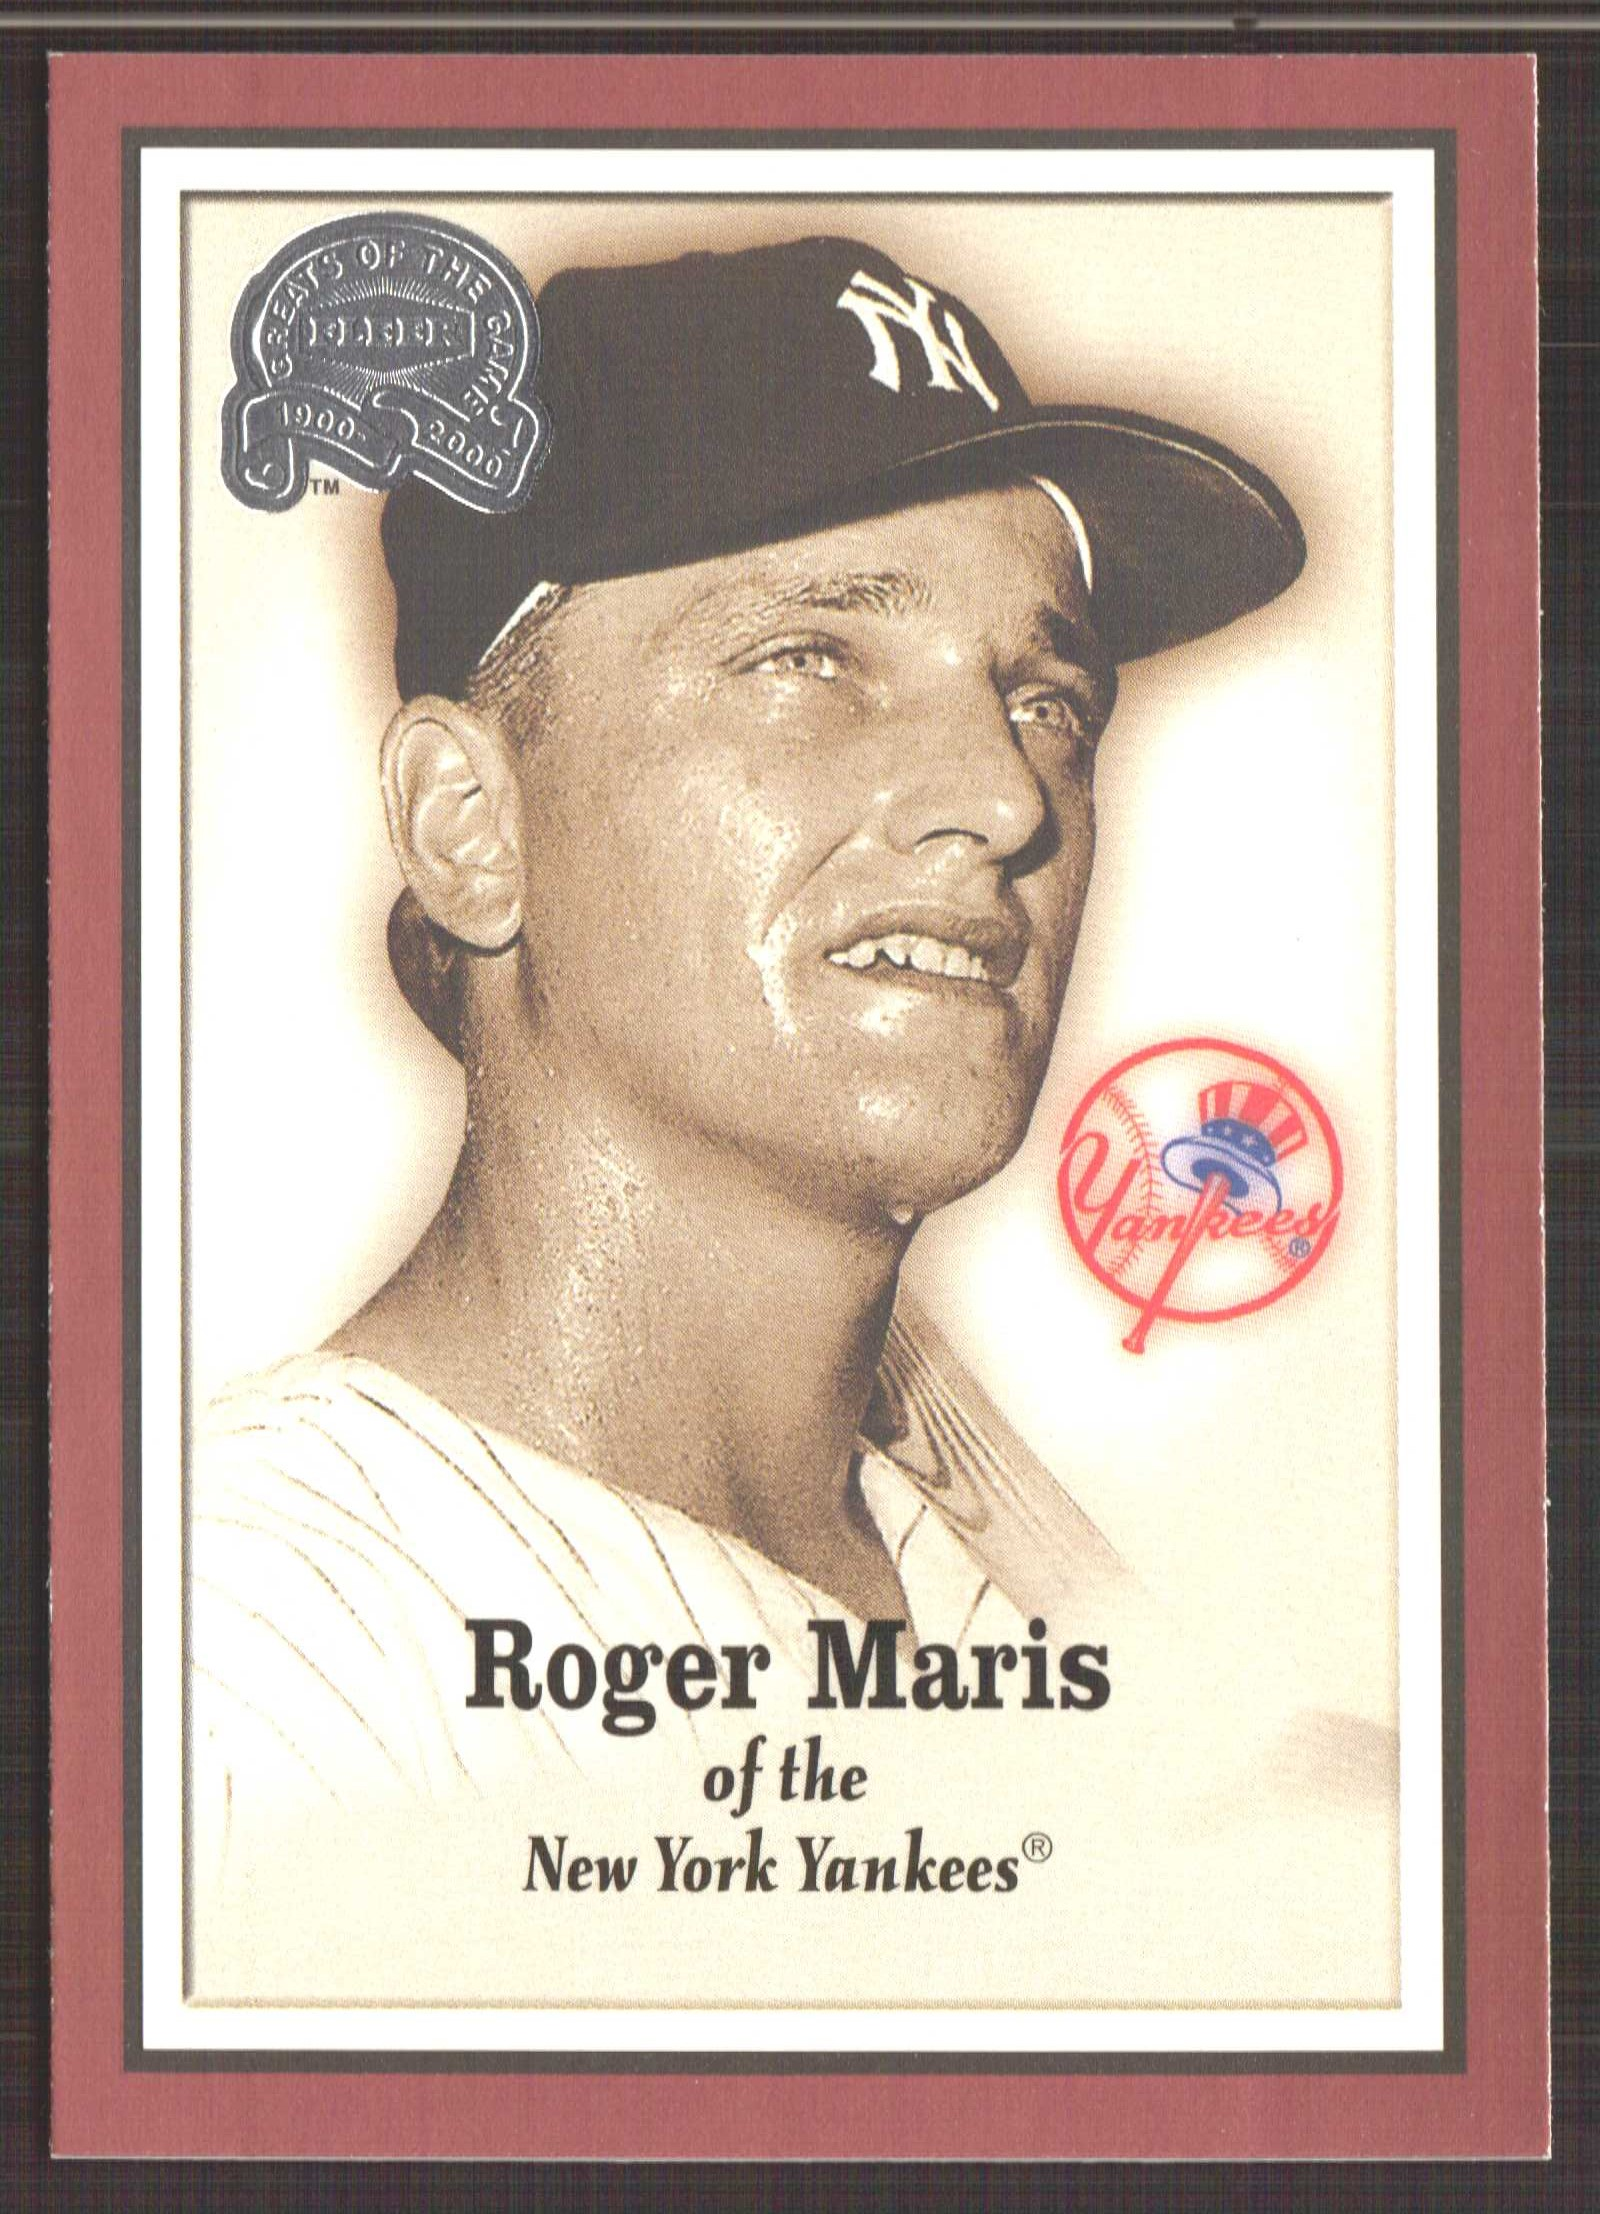 2000 Greats of the Game #7 Roger Maris